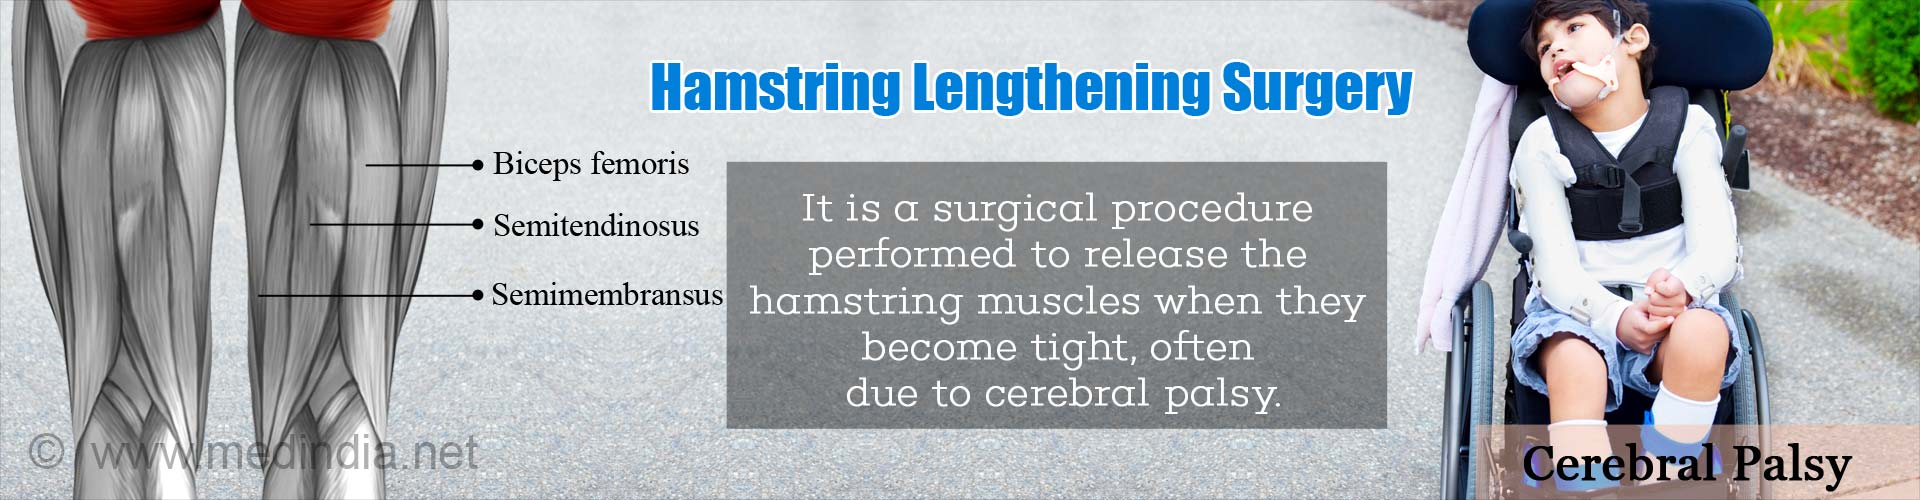 Hamstring Lengthening Surgery - It is a surgical procedure performed to release the hamstring muscles when they become tight, often due to cerebral palsy.